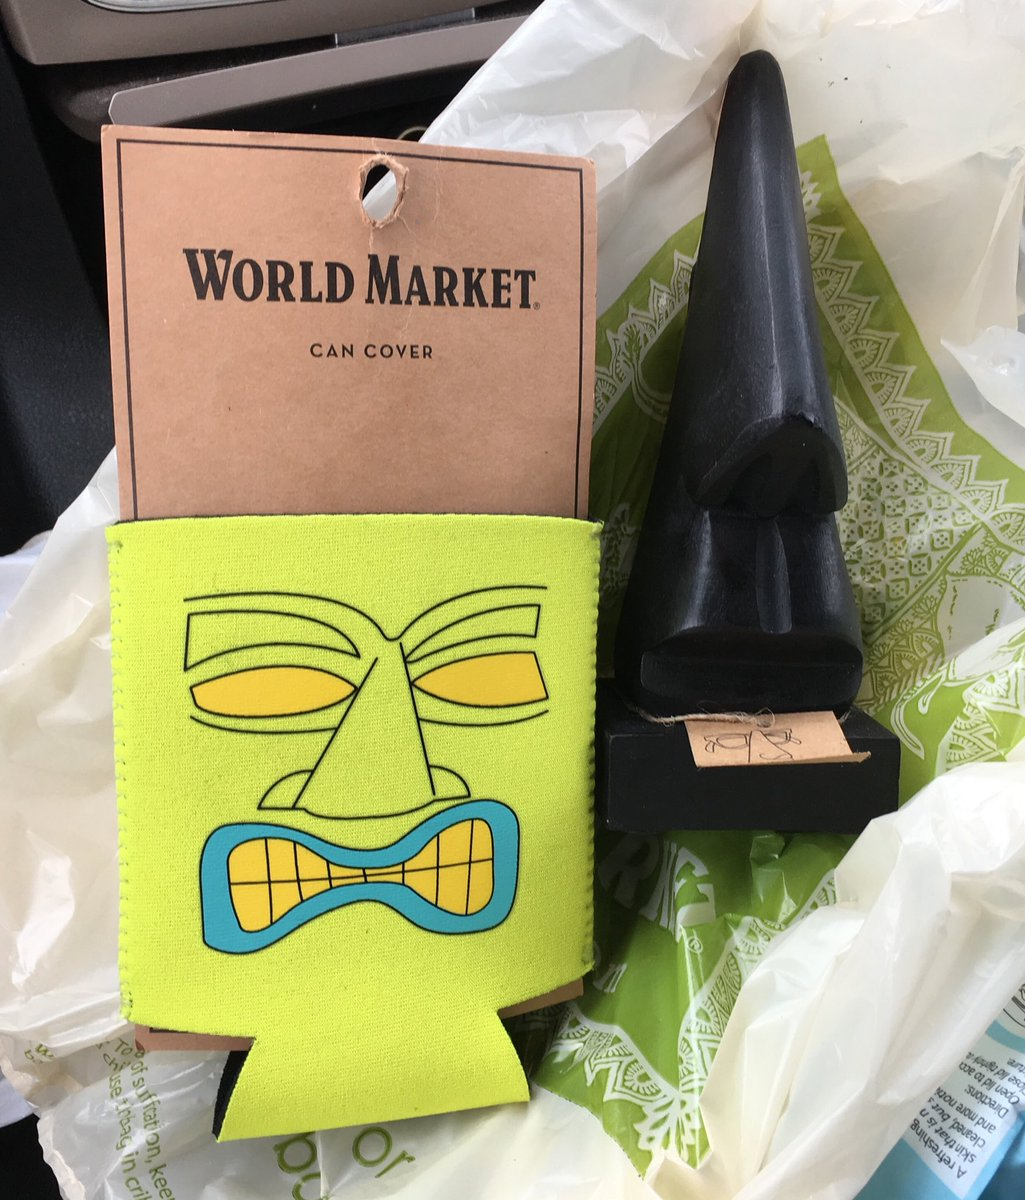 ed4470c8a1ed ...  worldmarket the koozie has a pocket for your room keycard and the tiki  nose is an eyeglass holder...what will they think of next   Tikipic.twitter.com  ...